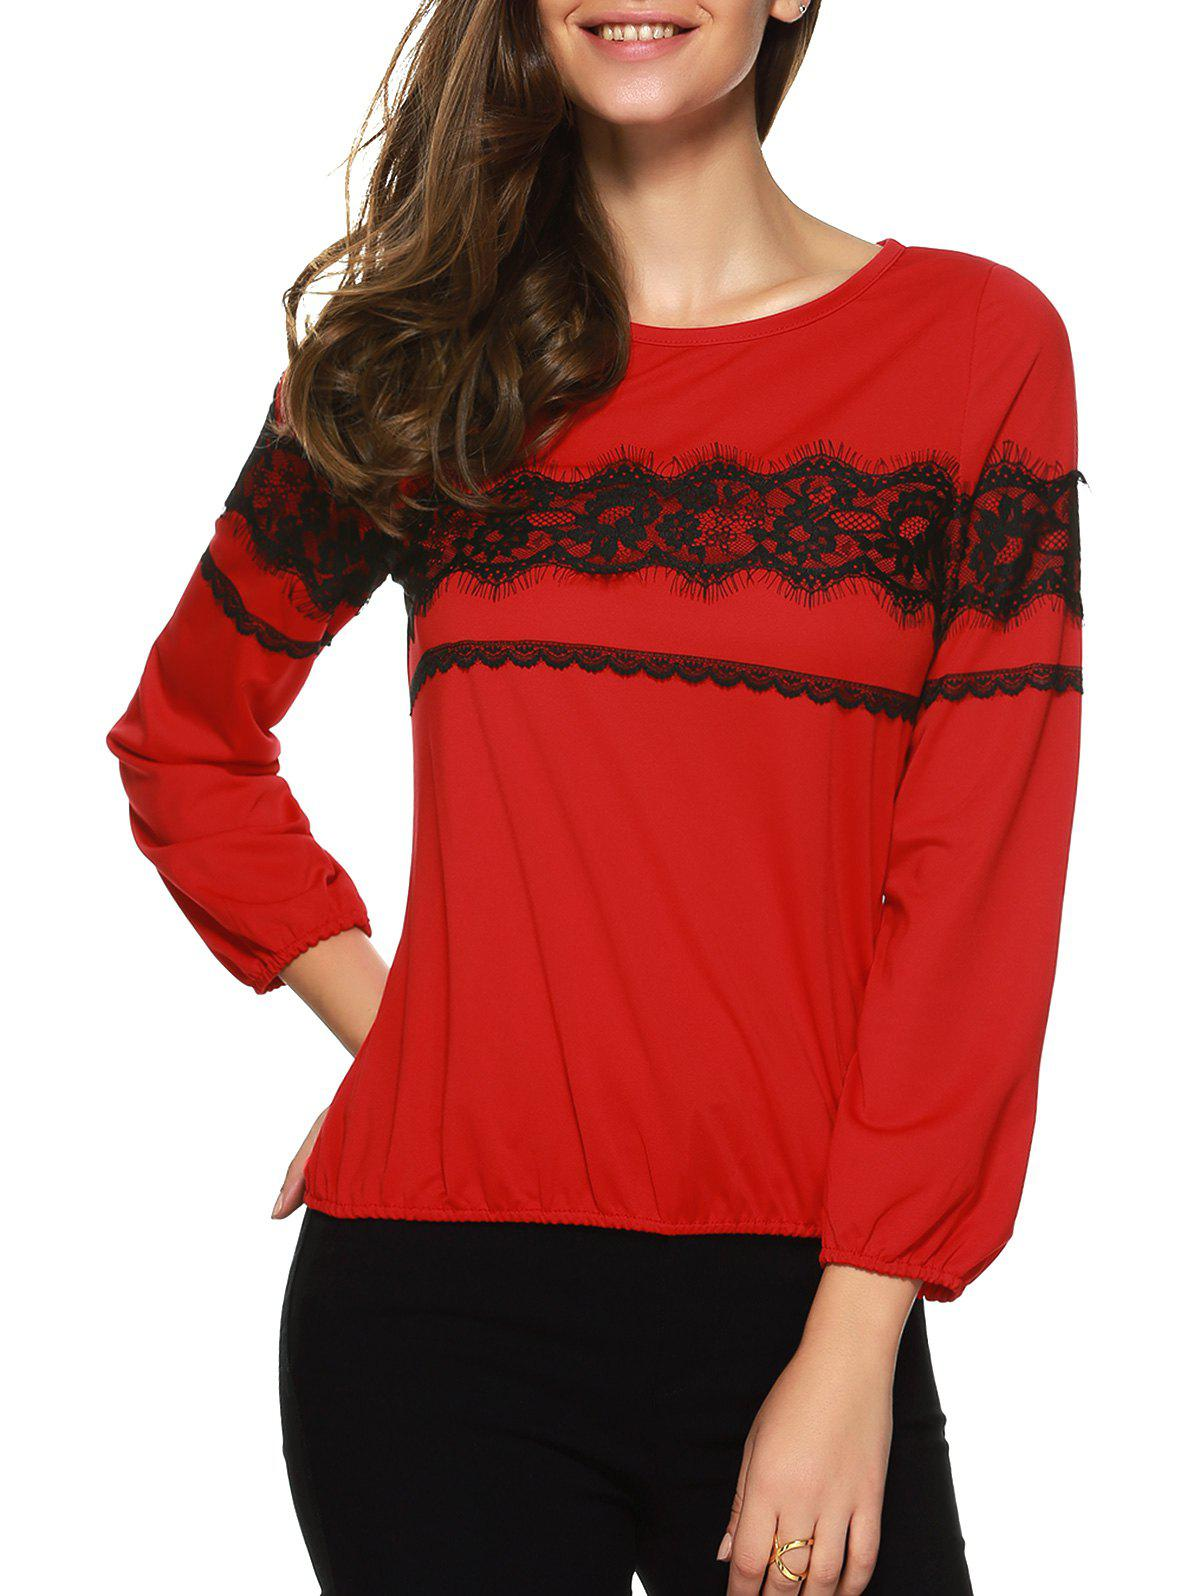 Lace Spliced T Shirt